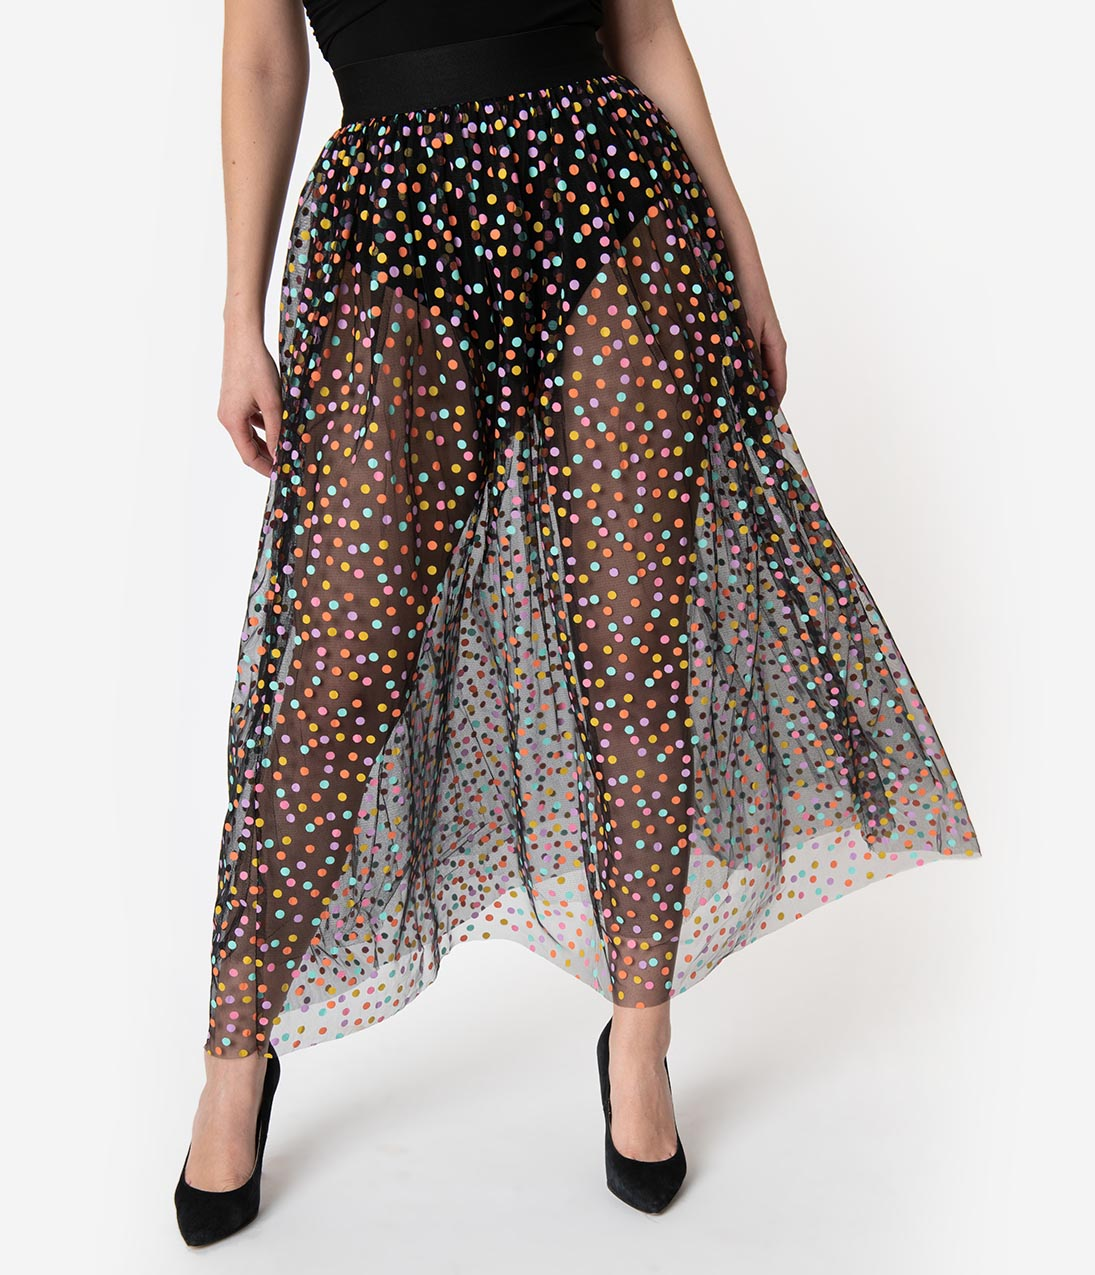 b78ac4ce138cc3 Black & Multicolor Polka Dot Mesh Tulle Kiara Long Skirt